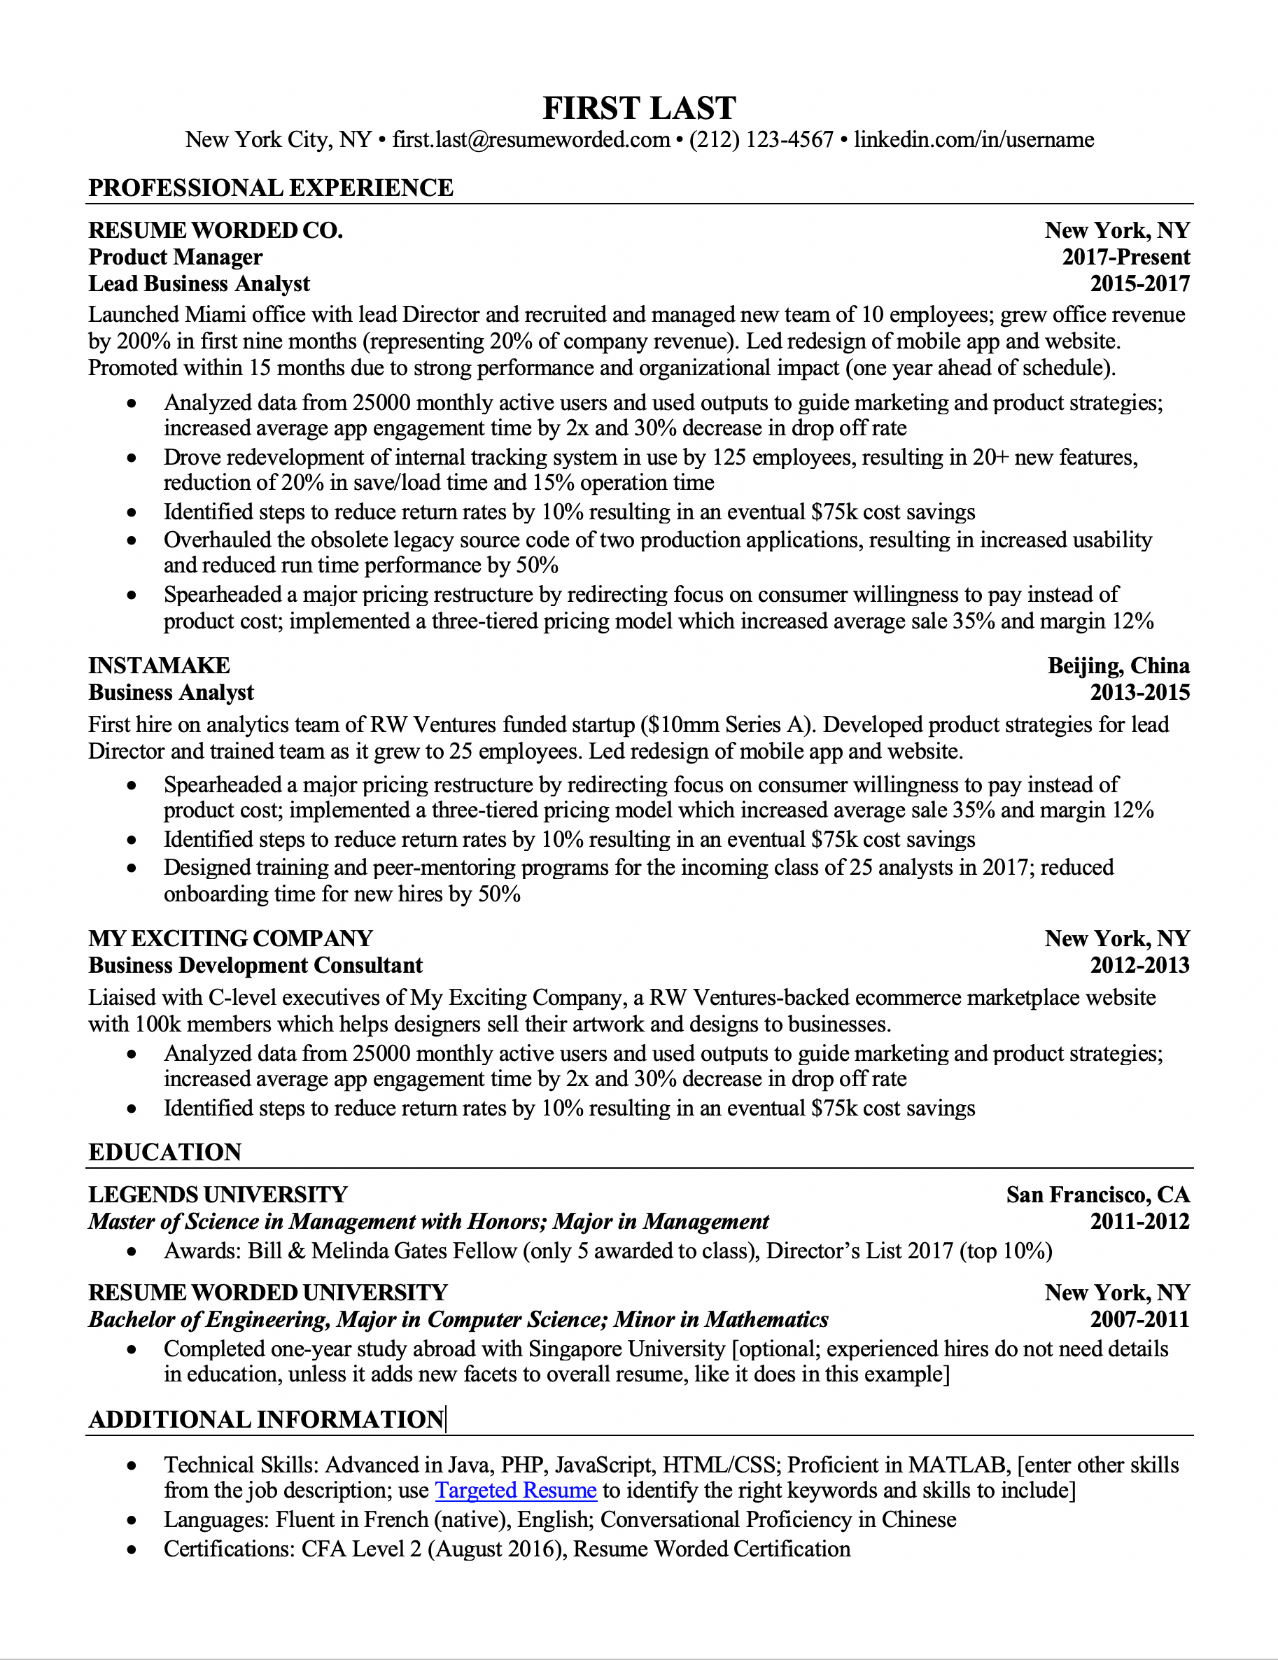 Searching for ats scannable resume examples? Professional Ats Resume Templates For Experienced Hires And College Students Or Grads For Free Updated For 2021